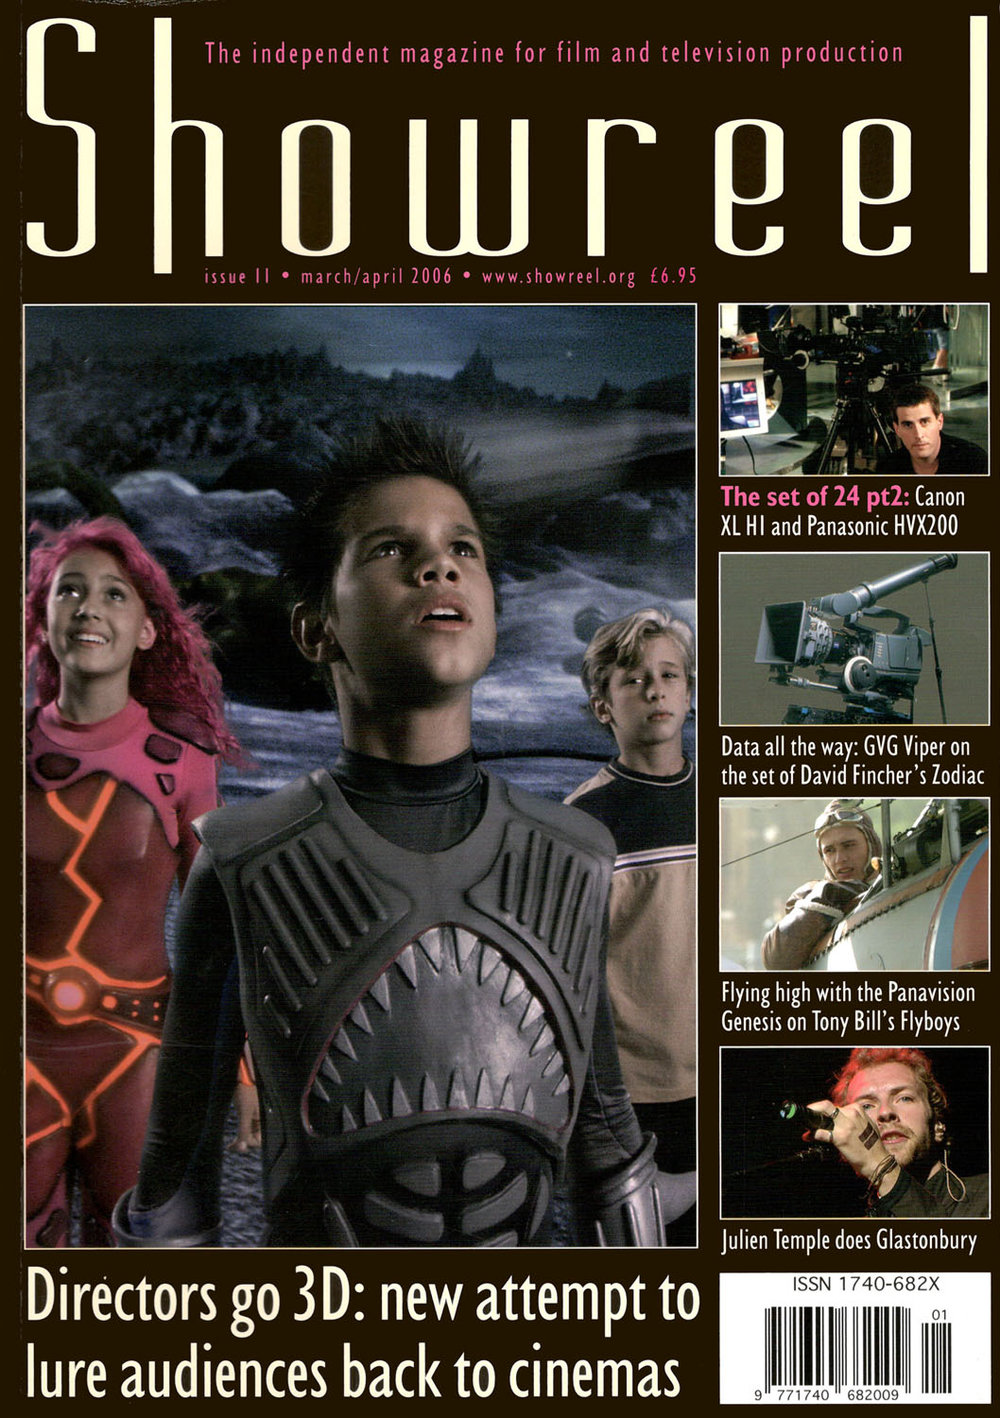 showreel_cover_issue-11_mar-apr-2006_[directorsgo3d]_crop_[smal]_1058x1500_72dpi_high.jpg